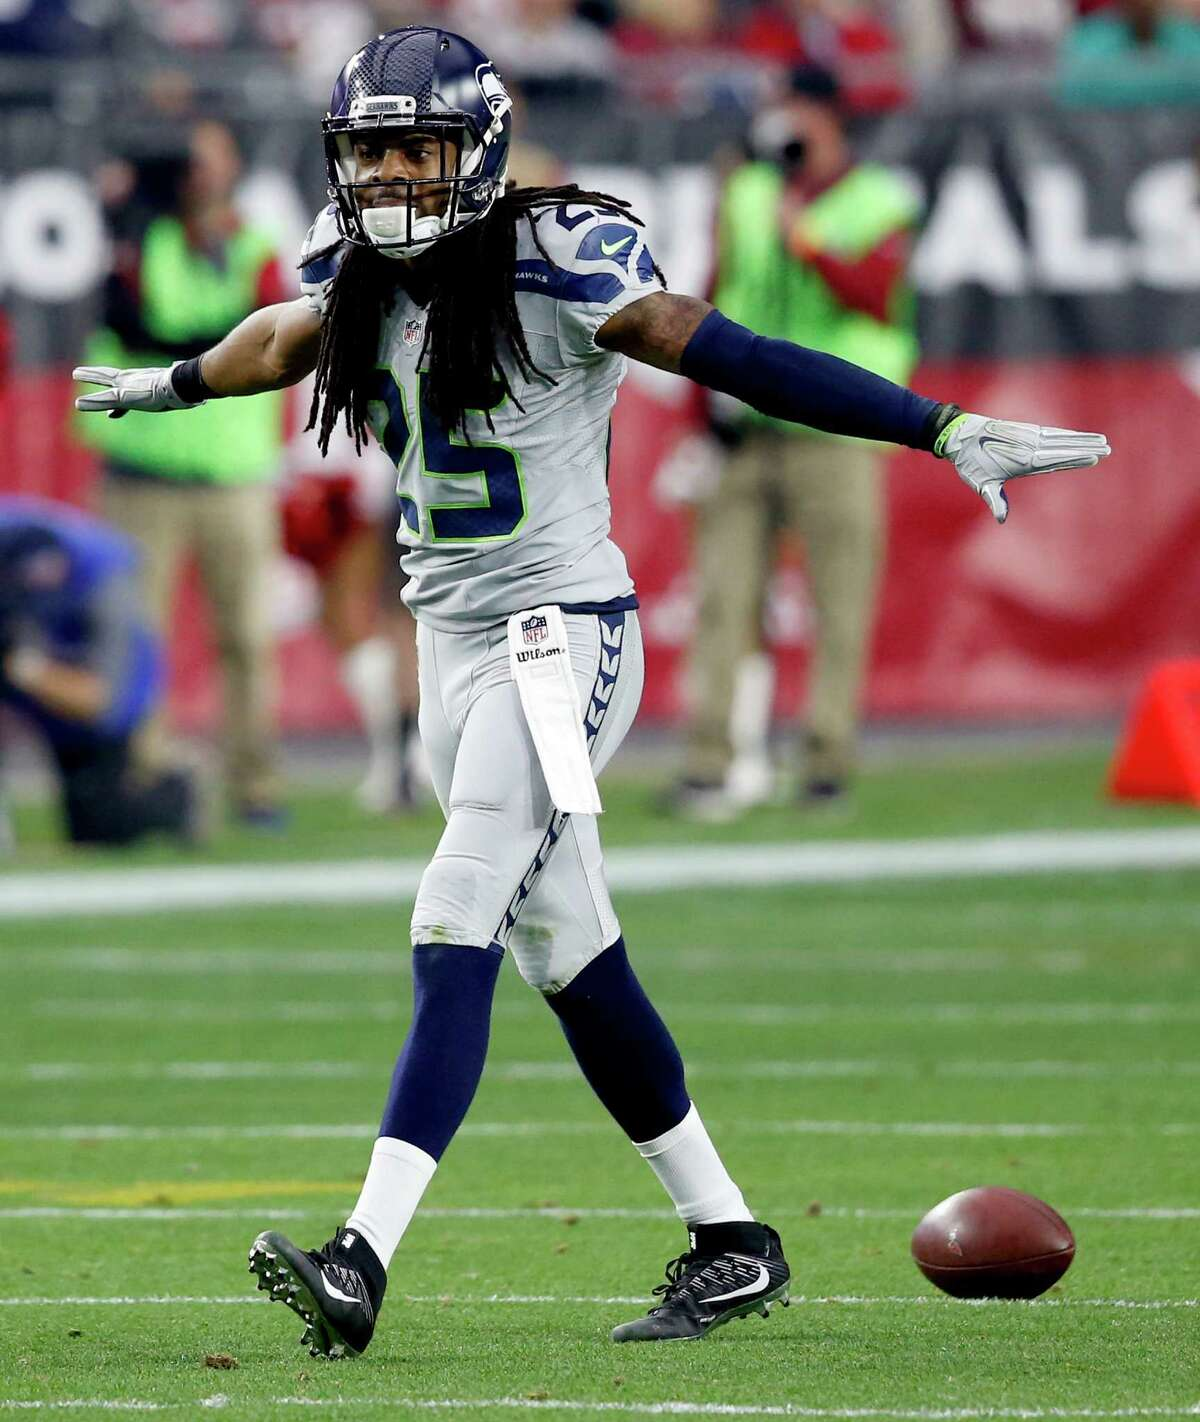 Seattle Seahawks cornerback Richard Sherman (25) celebrates a stop against the Arizona Cardinals during the first half of an NFL football game, Sunday, Jan. 3, 2016, in Glendale, Ariz. (AP Photo/Ross D. Franklin)